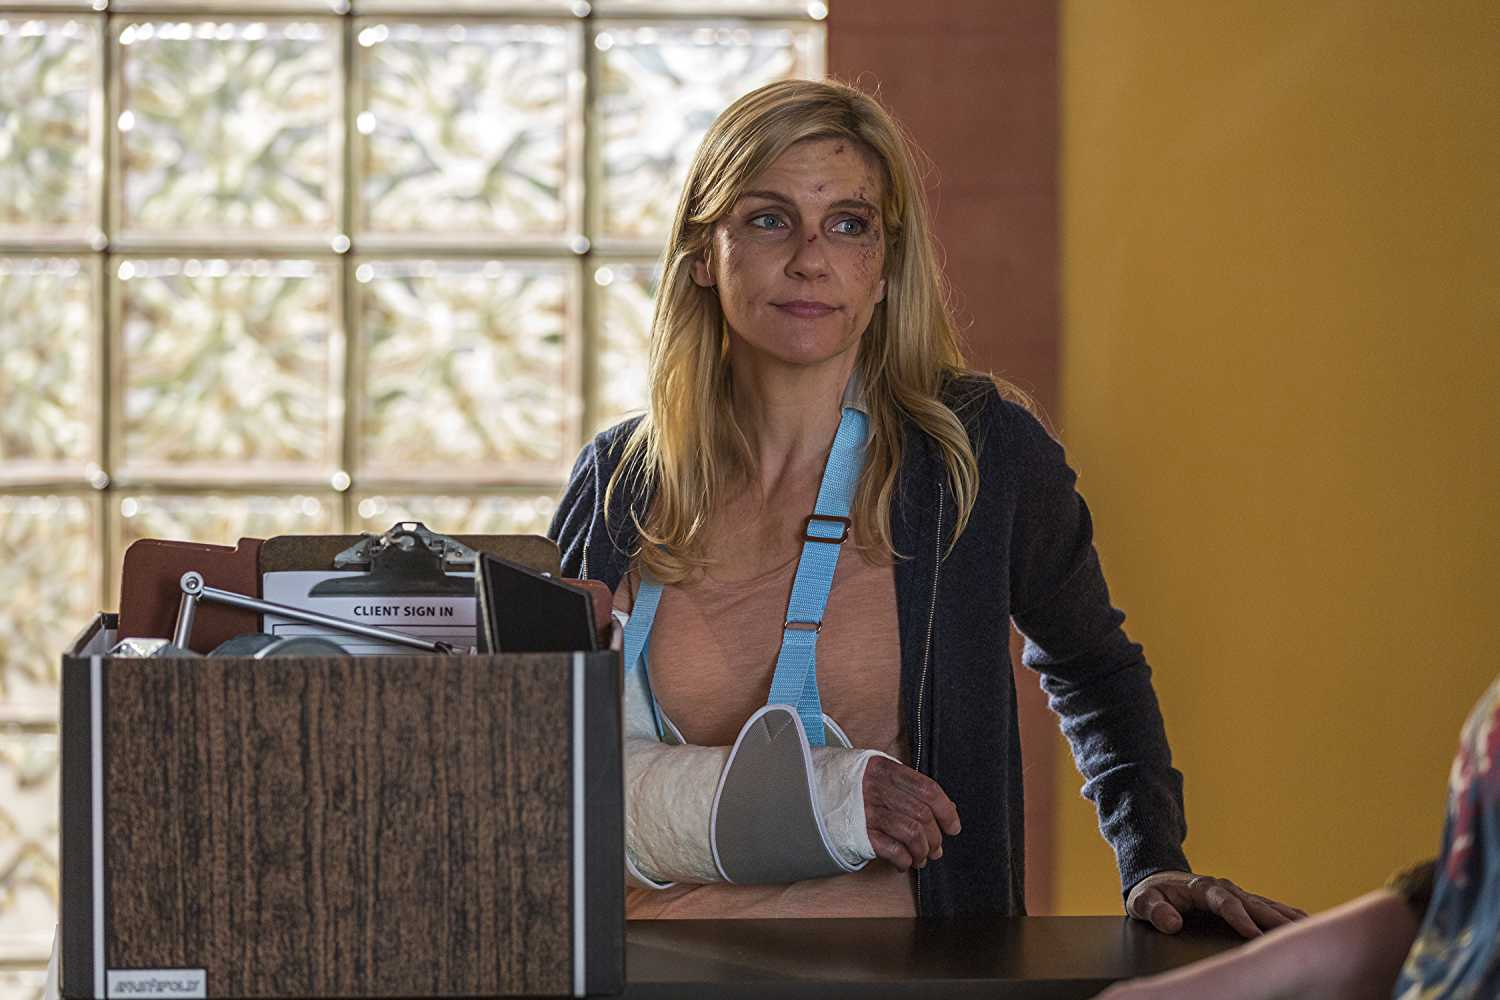 Seehorn portrays Kim Wexler in 'Better Call Saul' (Source: IMDb)